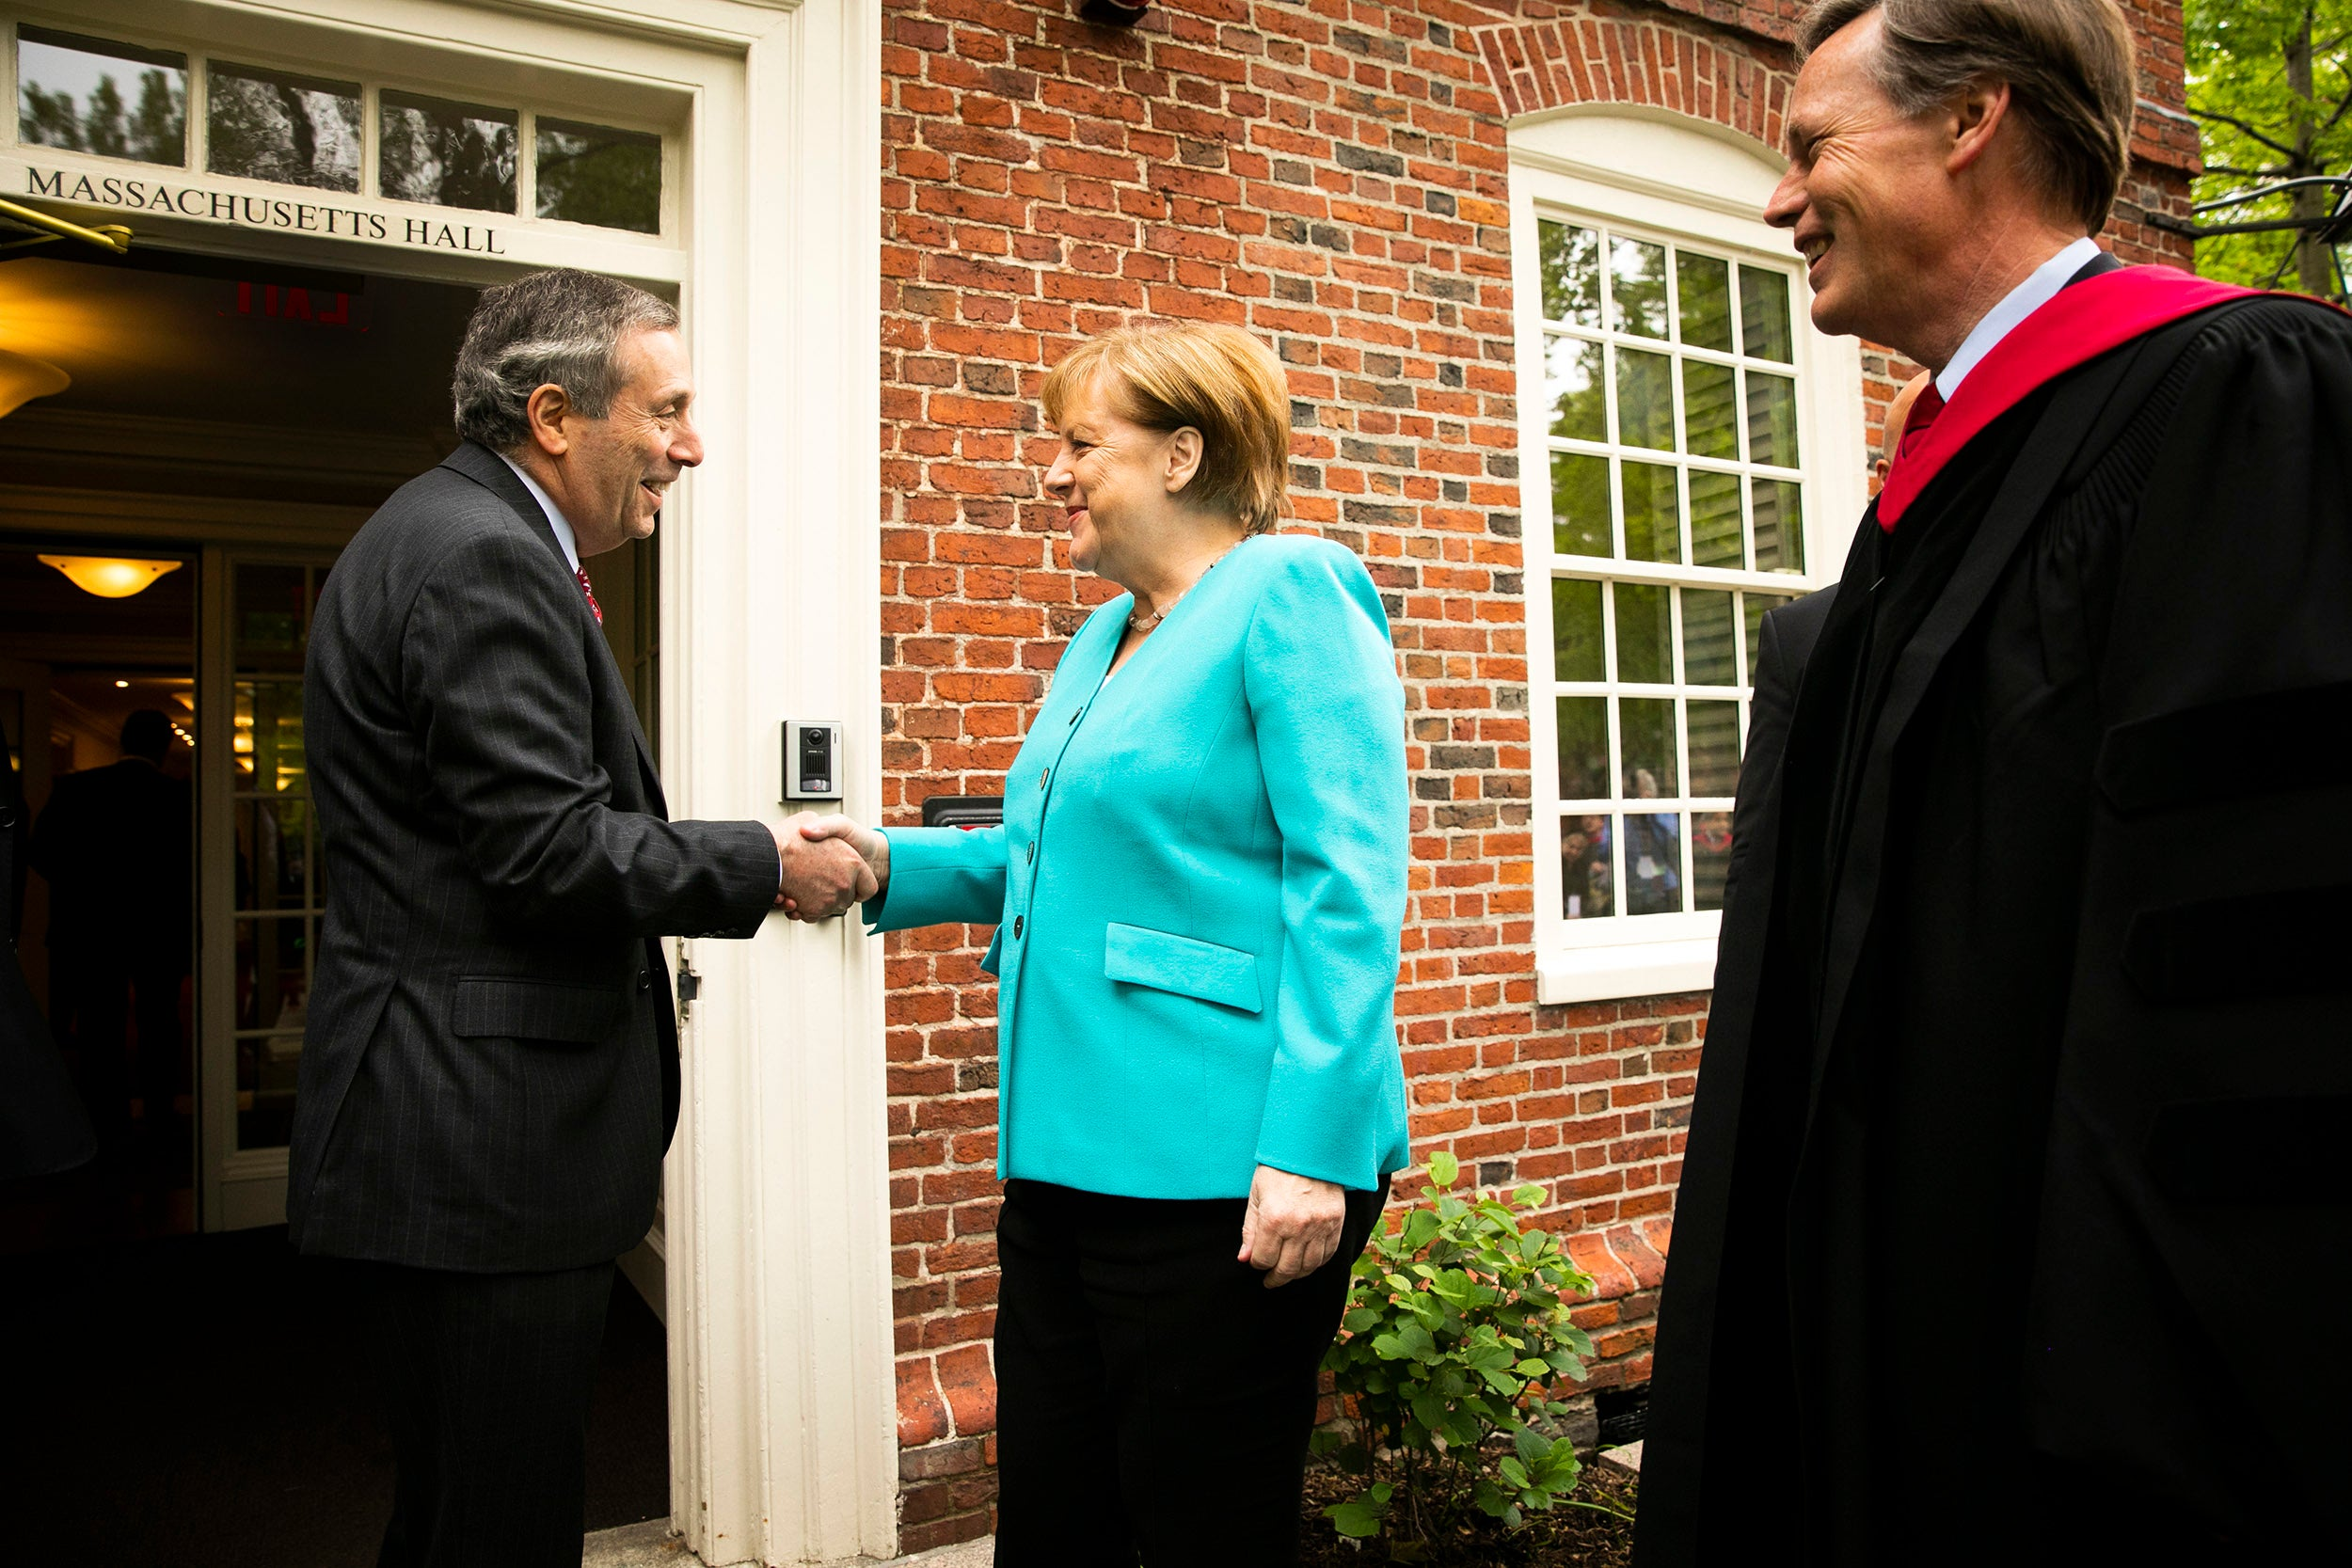 Larry Bacow shakes hands with Angela Merkel as Nick Burns looks on.